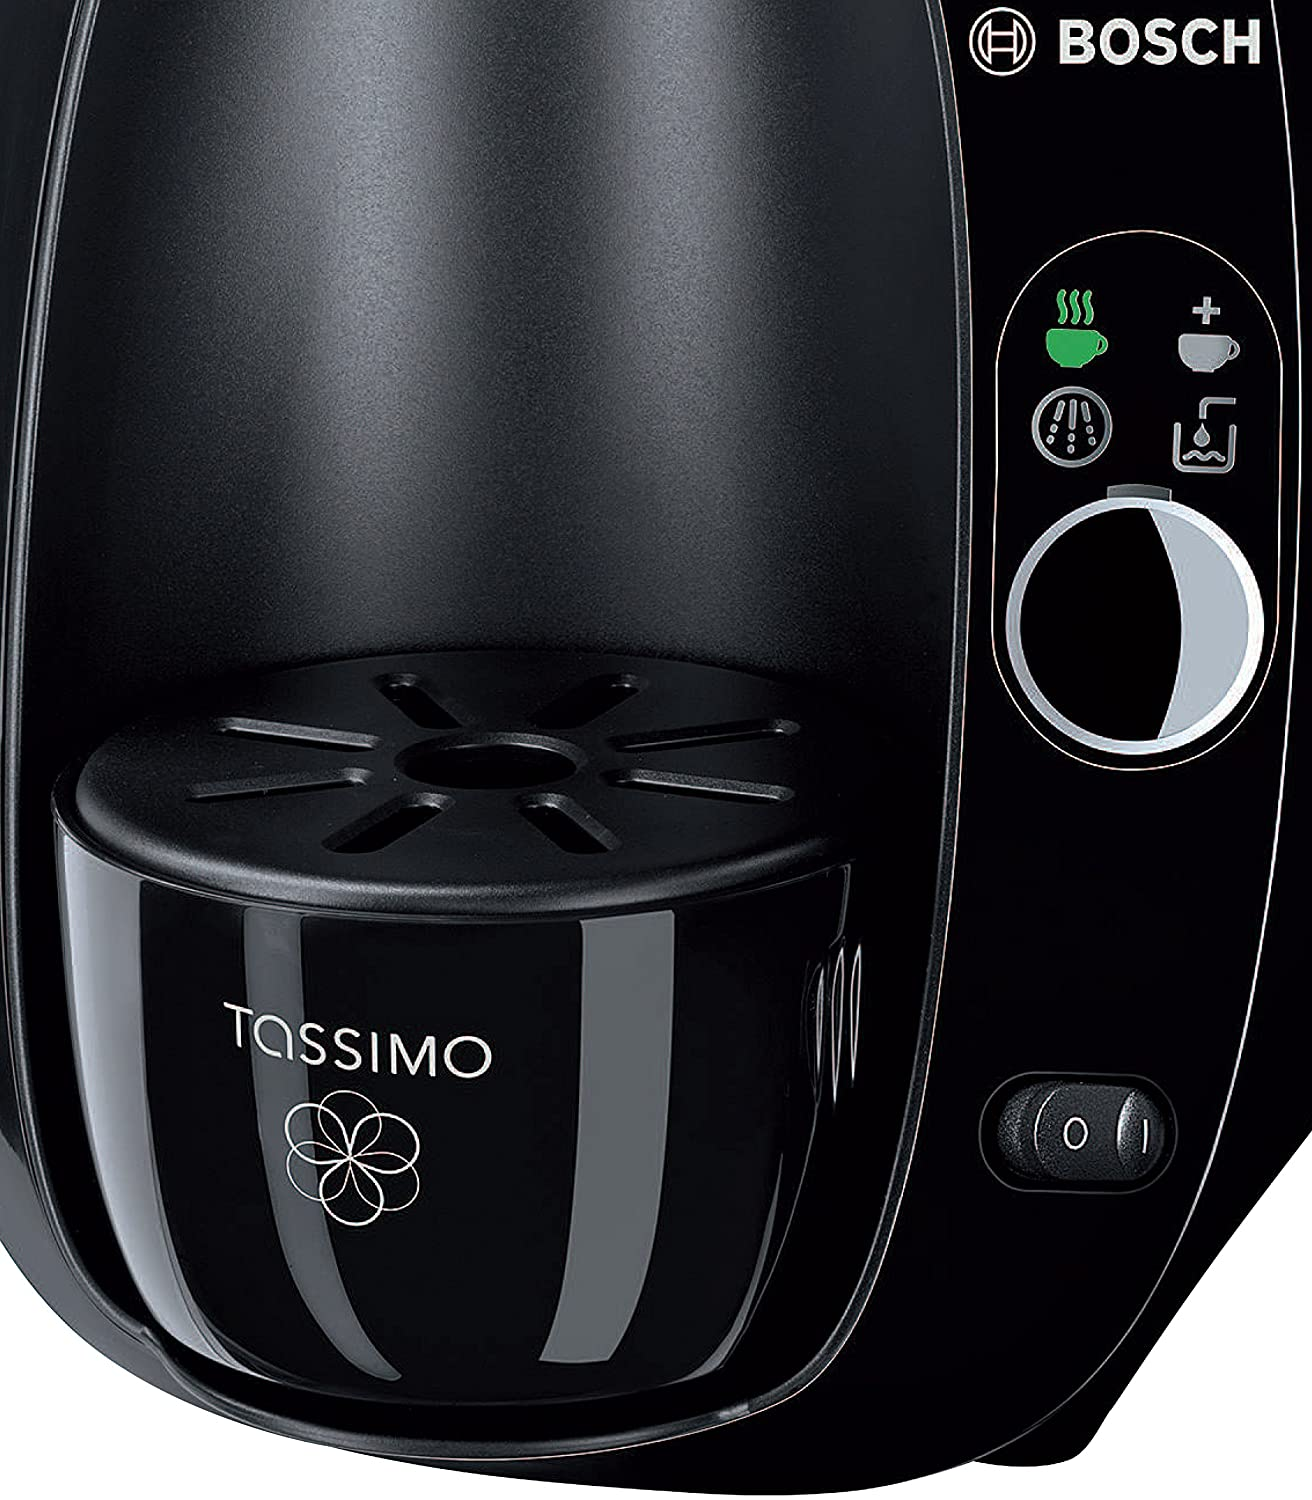 Bosch Tassimo T20 Amia Hot Beverage Coffee Espresso Maker Machine TAS2002GB NEW